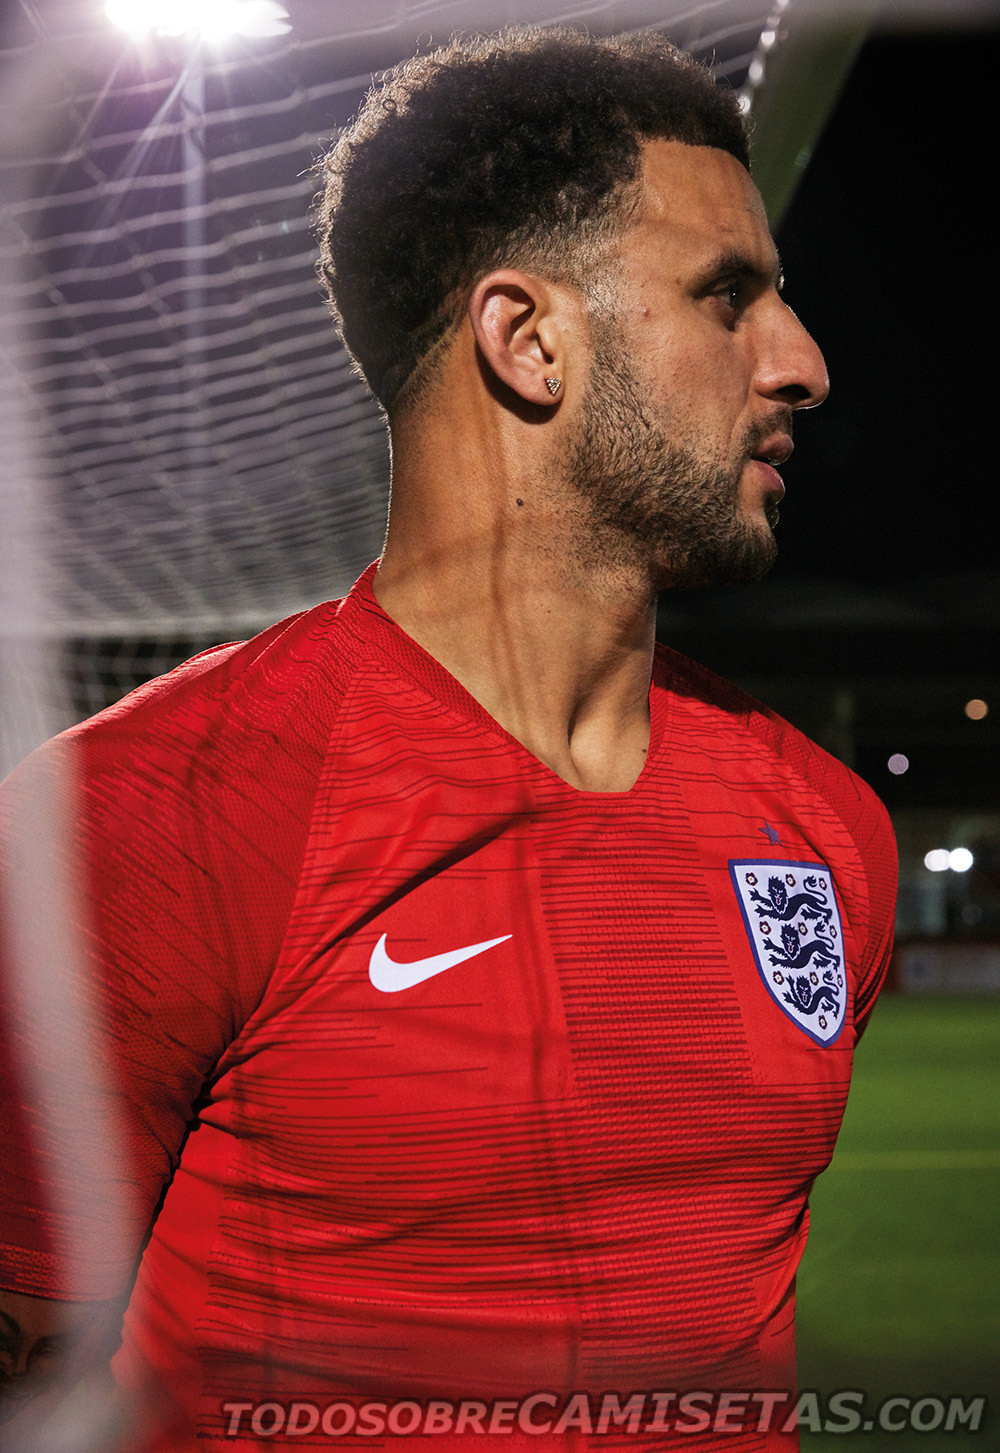 england-2018-world-cup-kits-nike-18.jpg